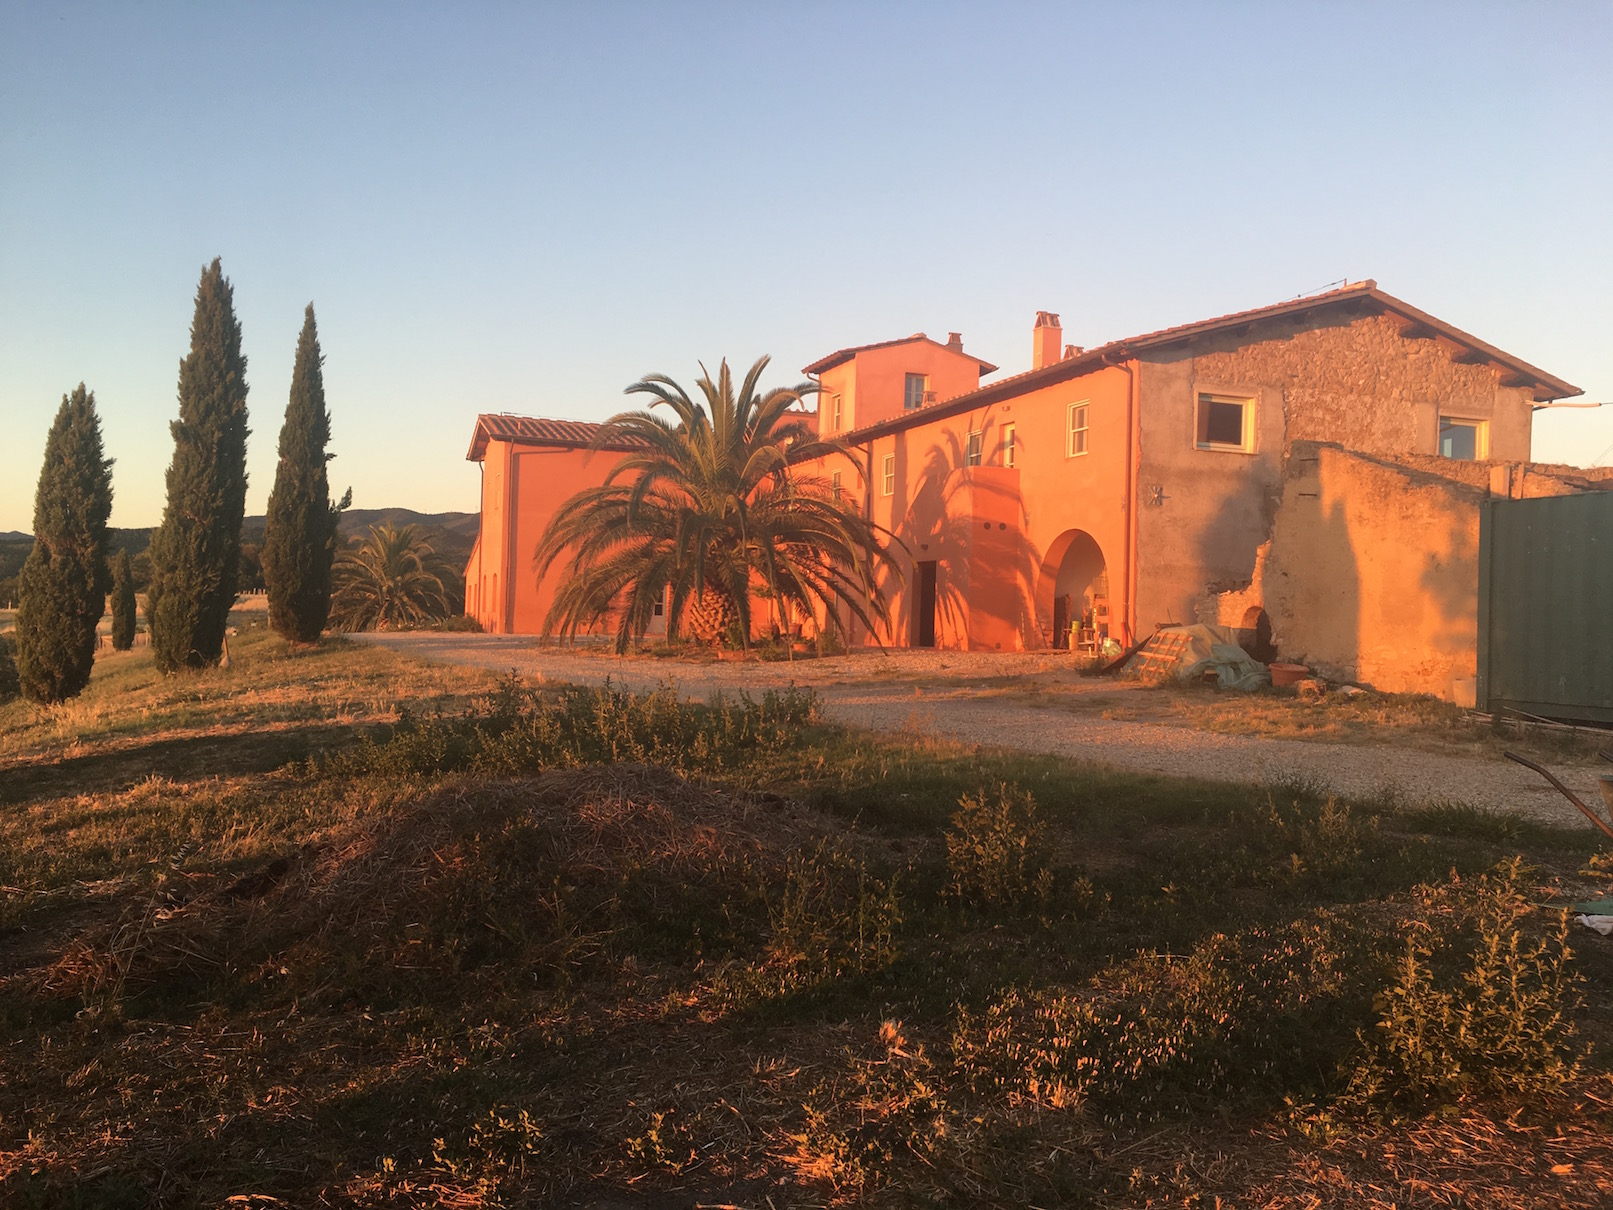 Here's the farm house at sunset. It was an idyllic environment, with views of the Mediterranean and Tuscan wheat fields and vineyards.